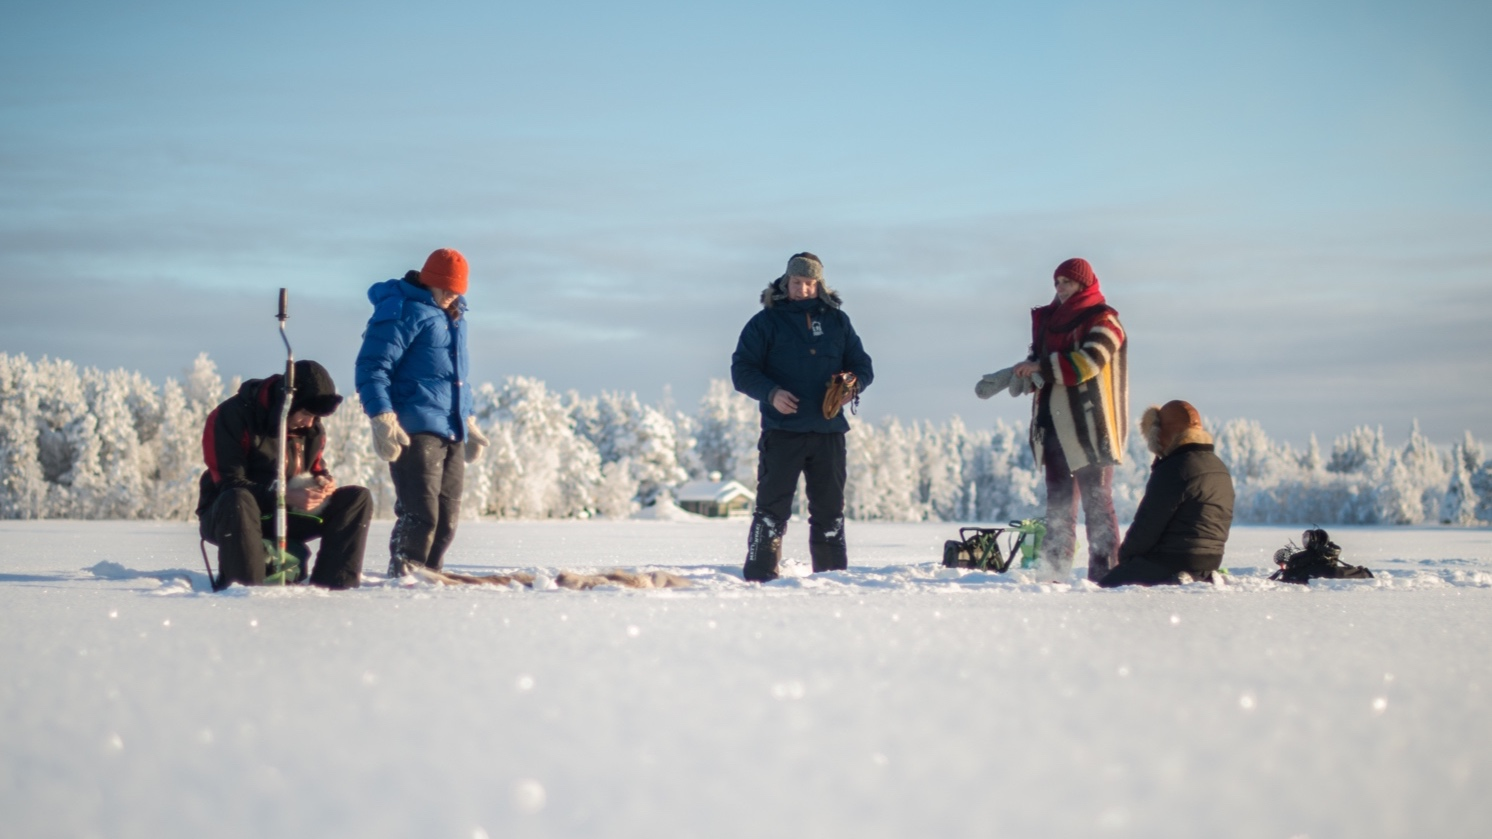 A guide teaches you the traditional way of ice fishing. After that you can try it yourself and enjoy the complete whiteness and silence. A hut will be warmed up for you with some hot drinks served. if the god of lakes allows us to have some fish our guide will prepare it in the old fashioned way on an open fire. Duration 3 hours.  LEARN MORE